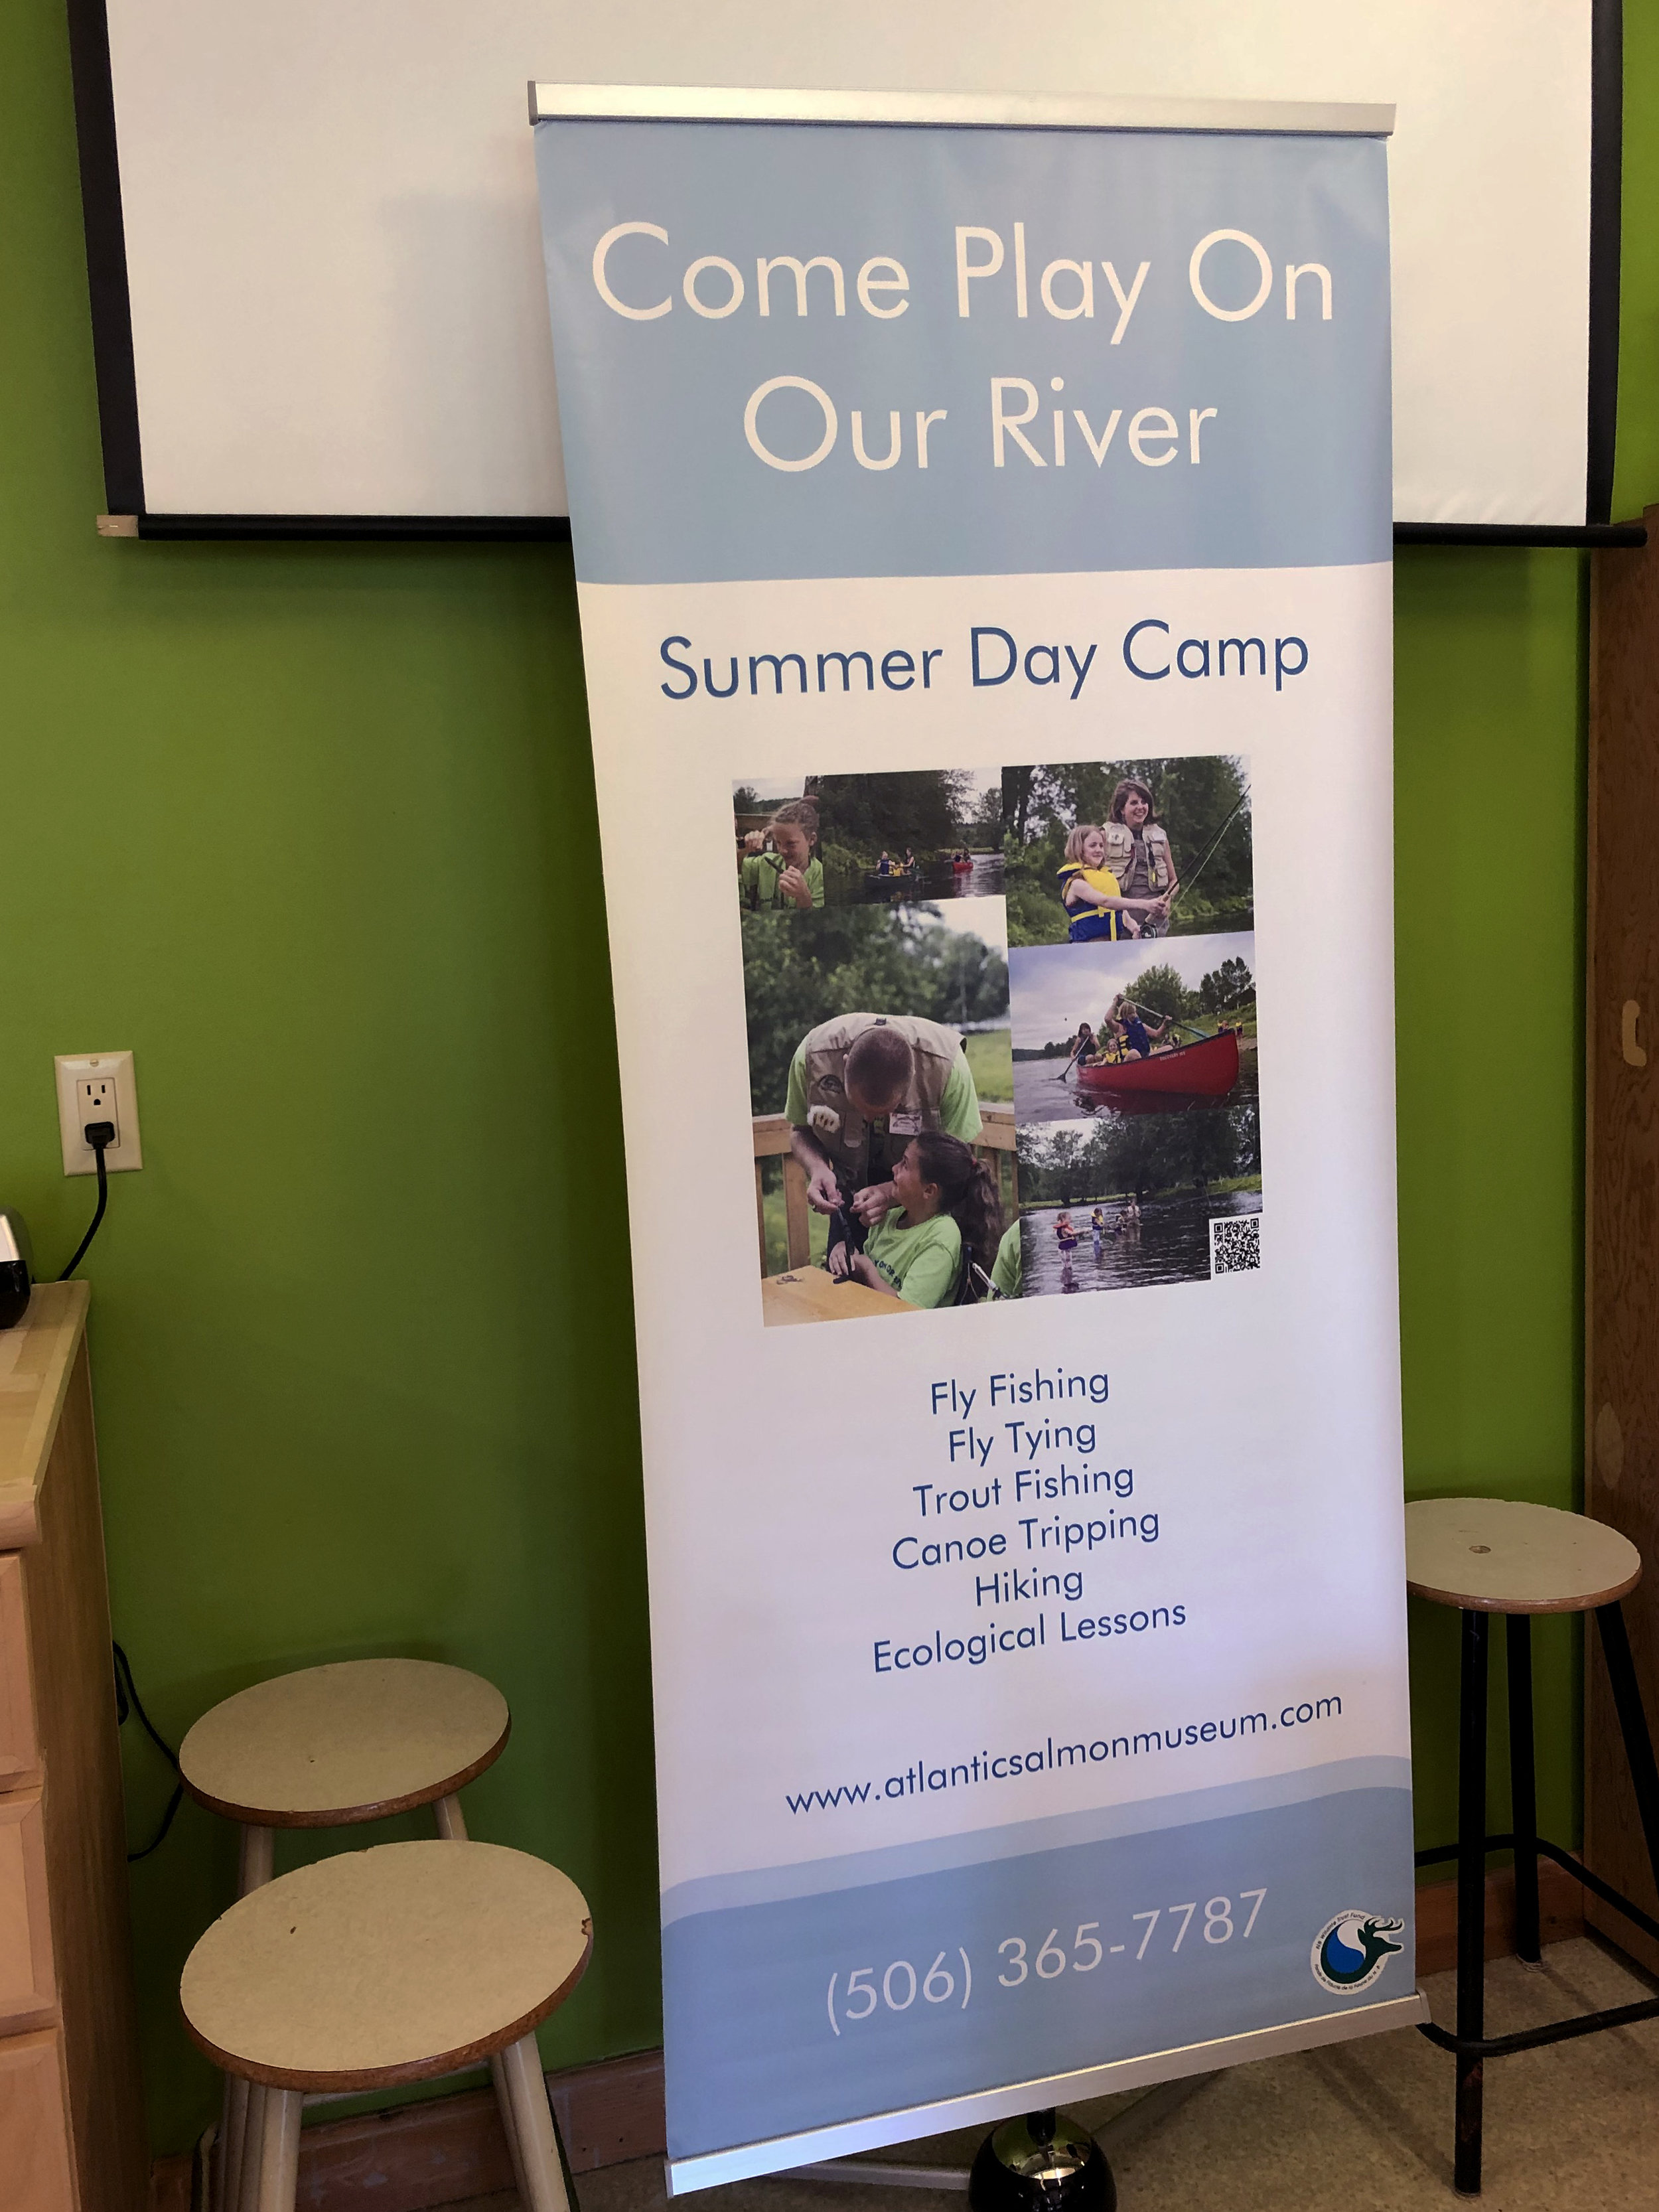 promo-come-play-on-our-river-summer-camp.jpg